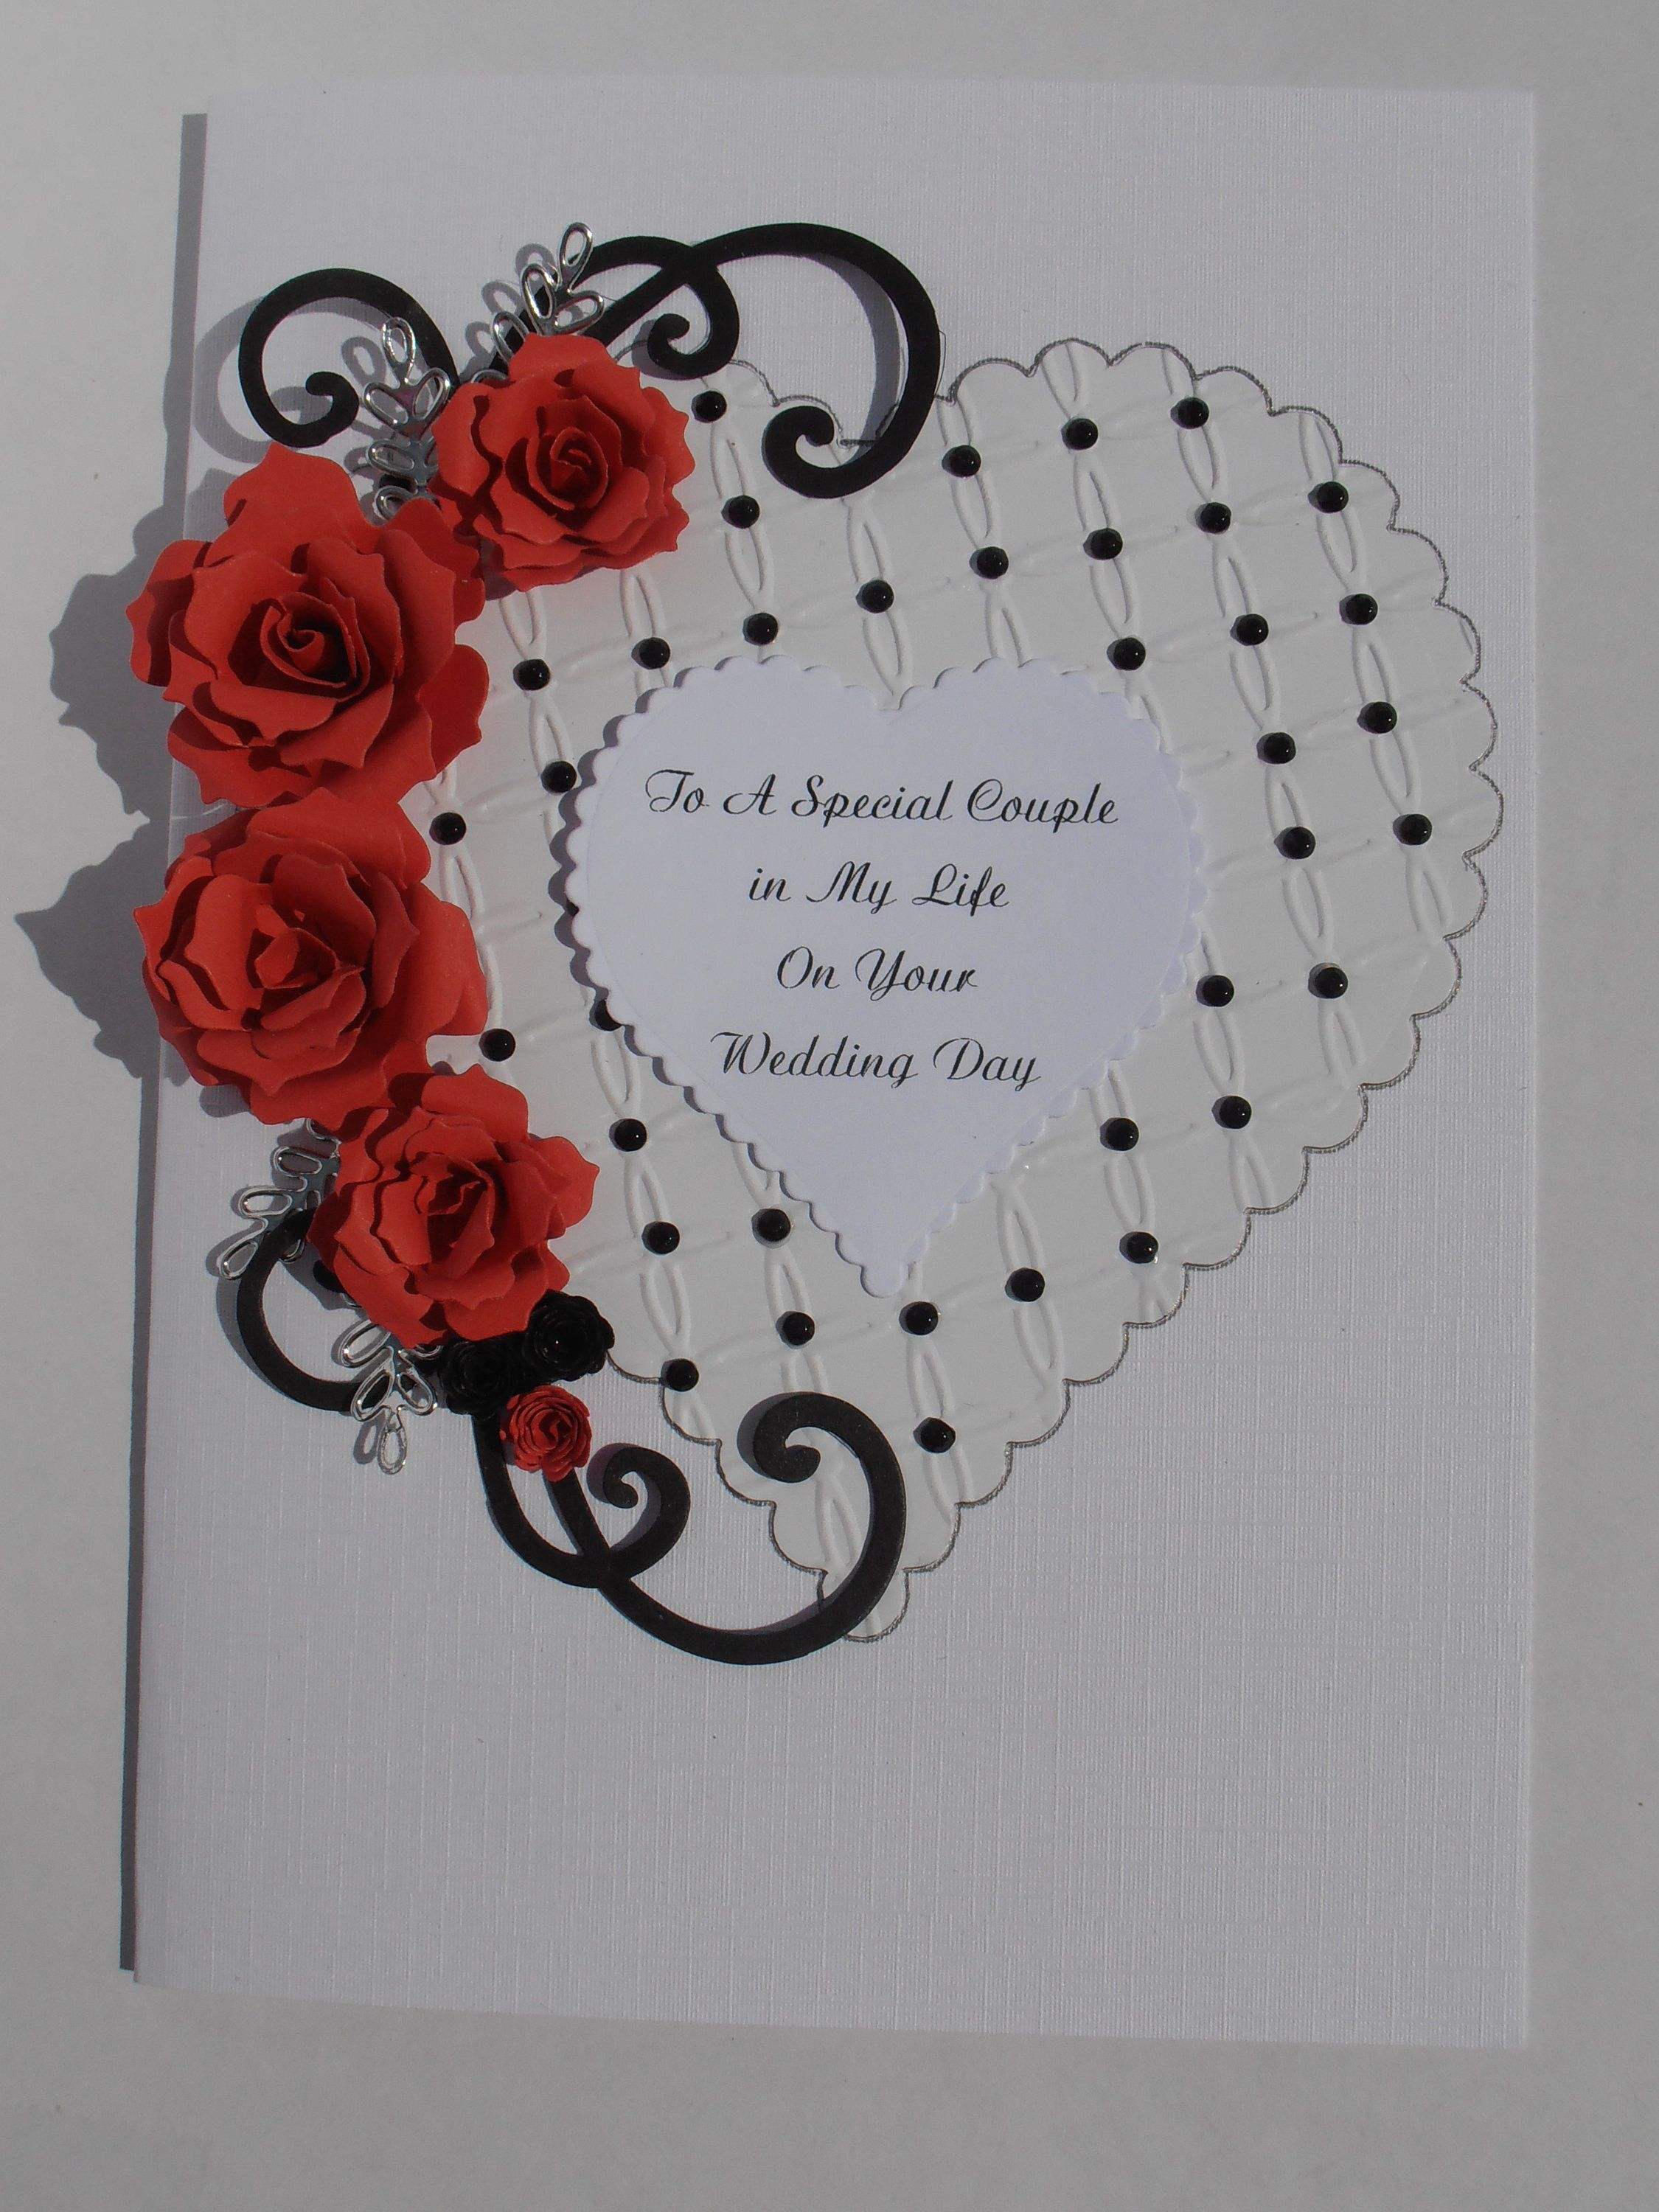 Handmade Personalised Gothic Style Birthday Anniversary Card Etsy Embossed Cards Anniversary Cards Wedding Anniversary Cards